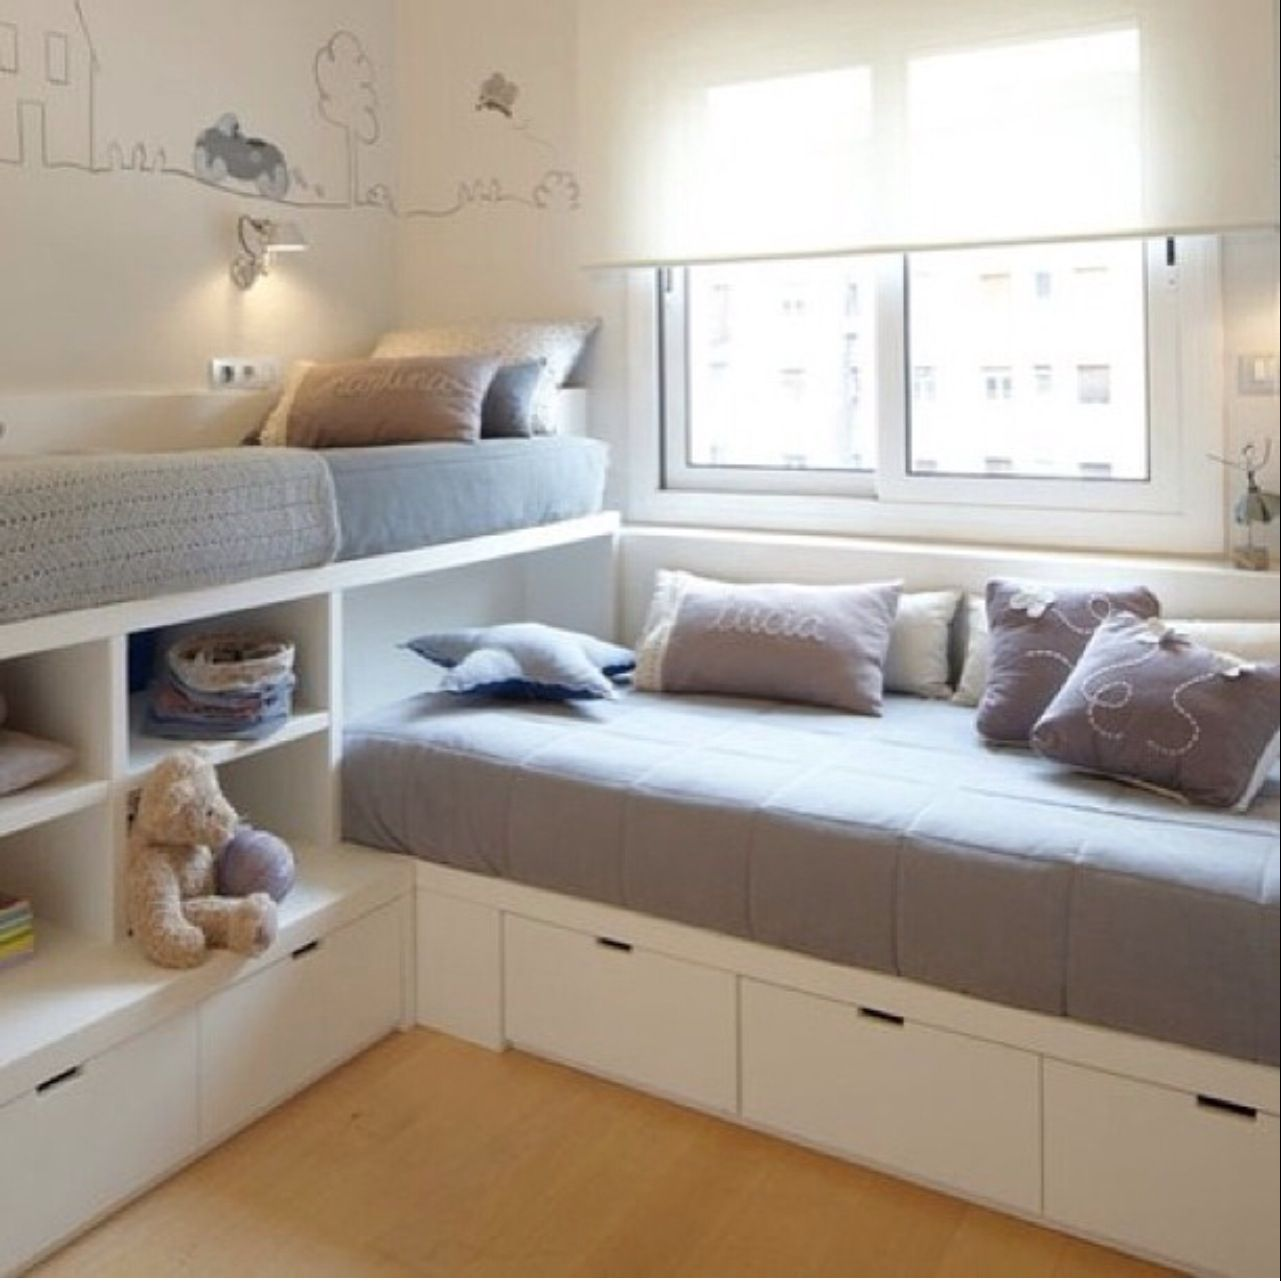 Shared Bedroom Ideas Teenagers Quarto Para Dois Boys Pinterest Kids Rooms Bedrooms